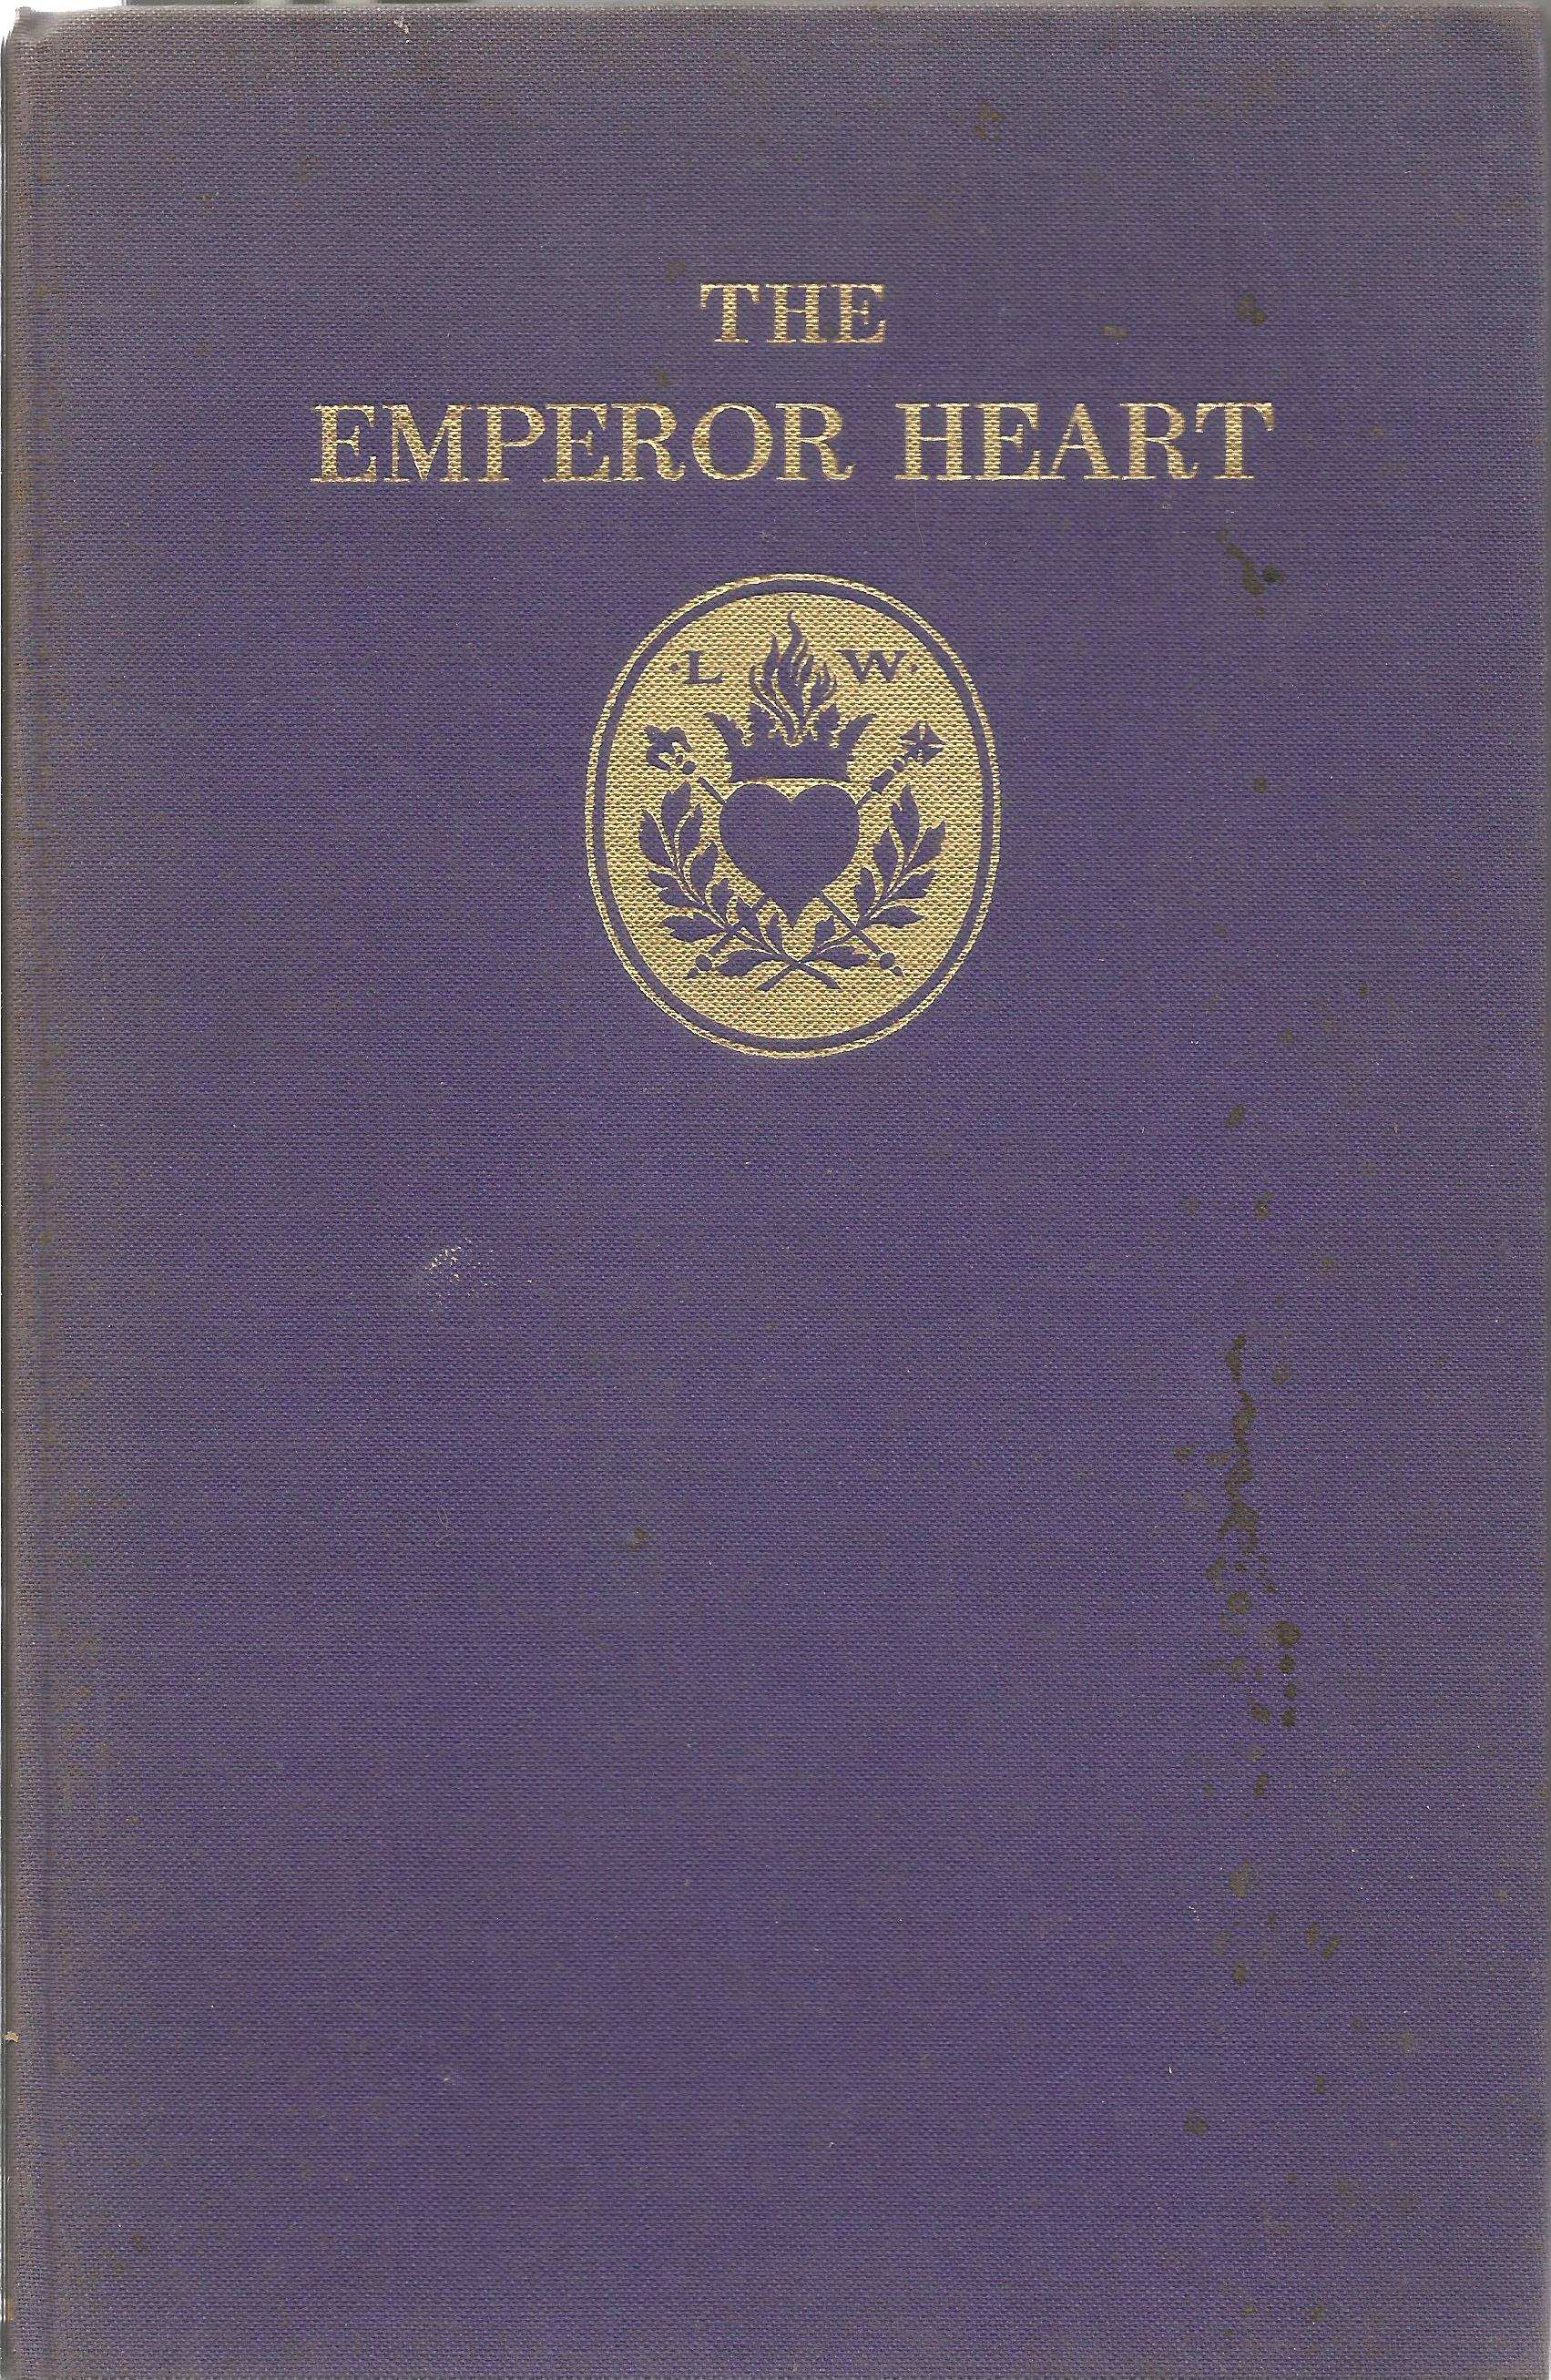 Laurence Whistler Hardback Book The Emperor Heart signed by the Author on the Second Page has a date